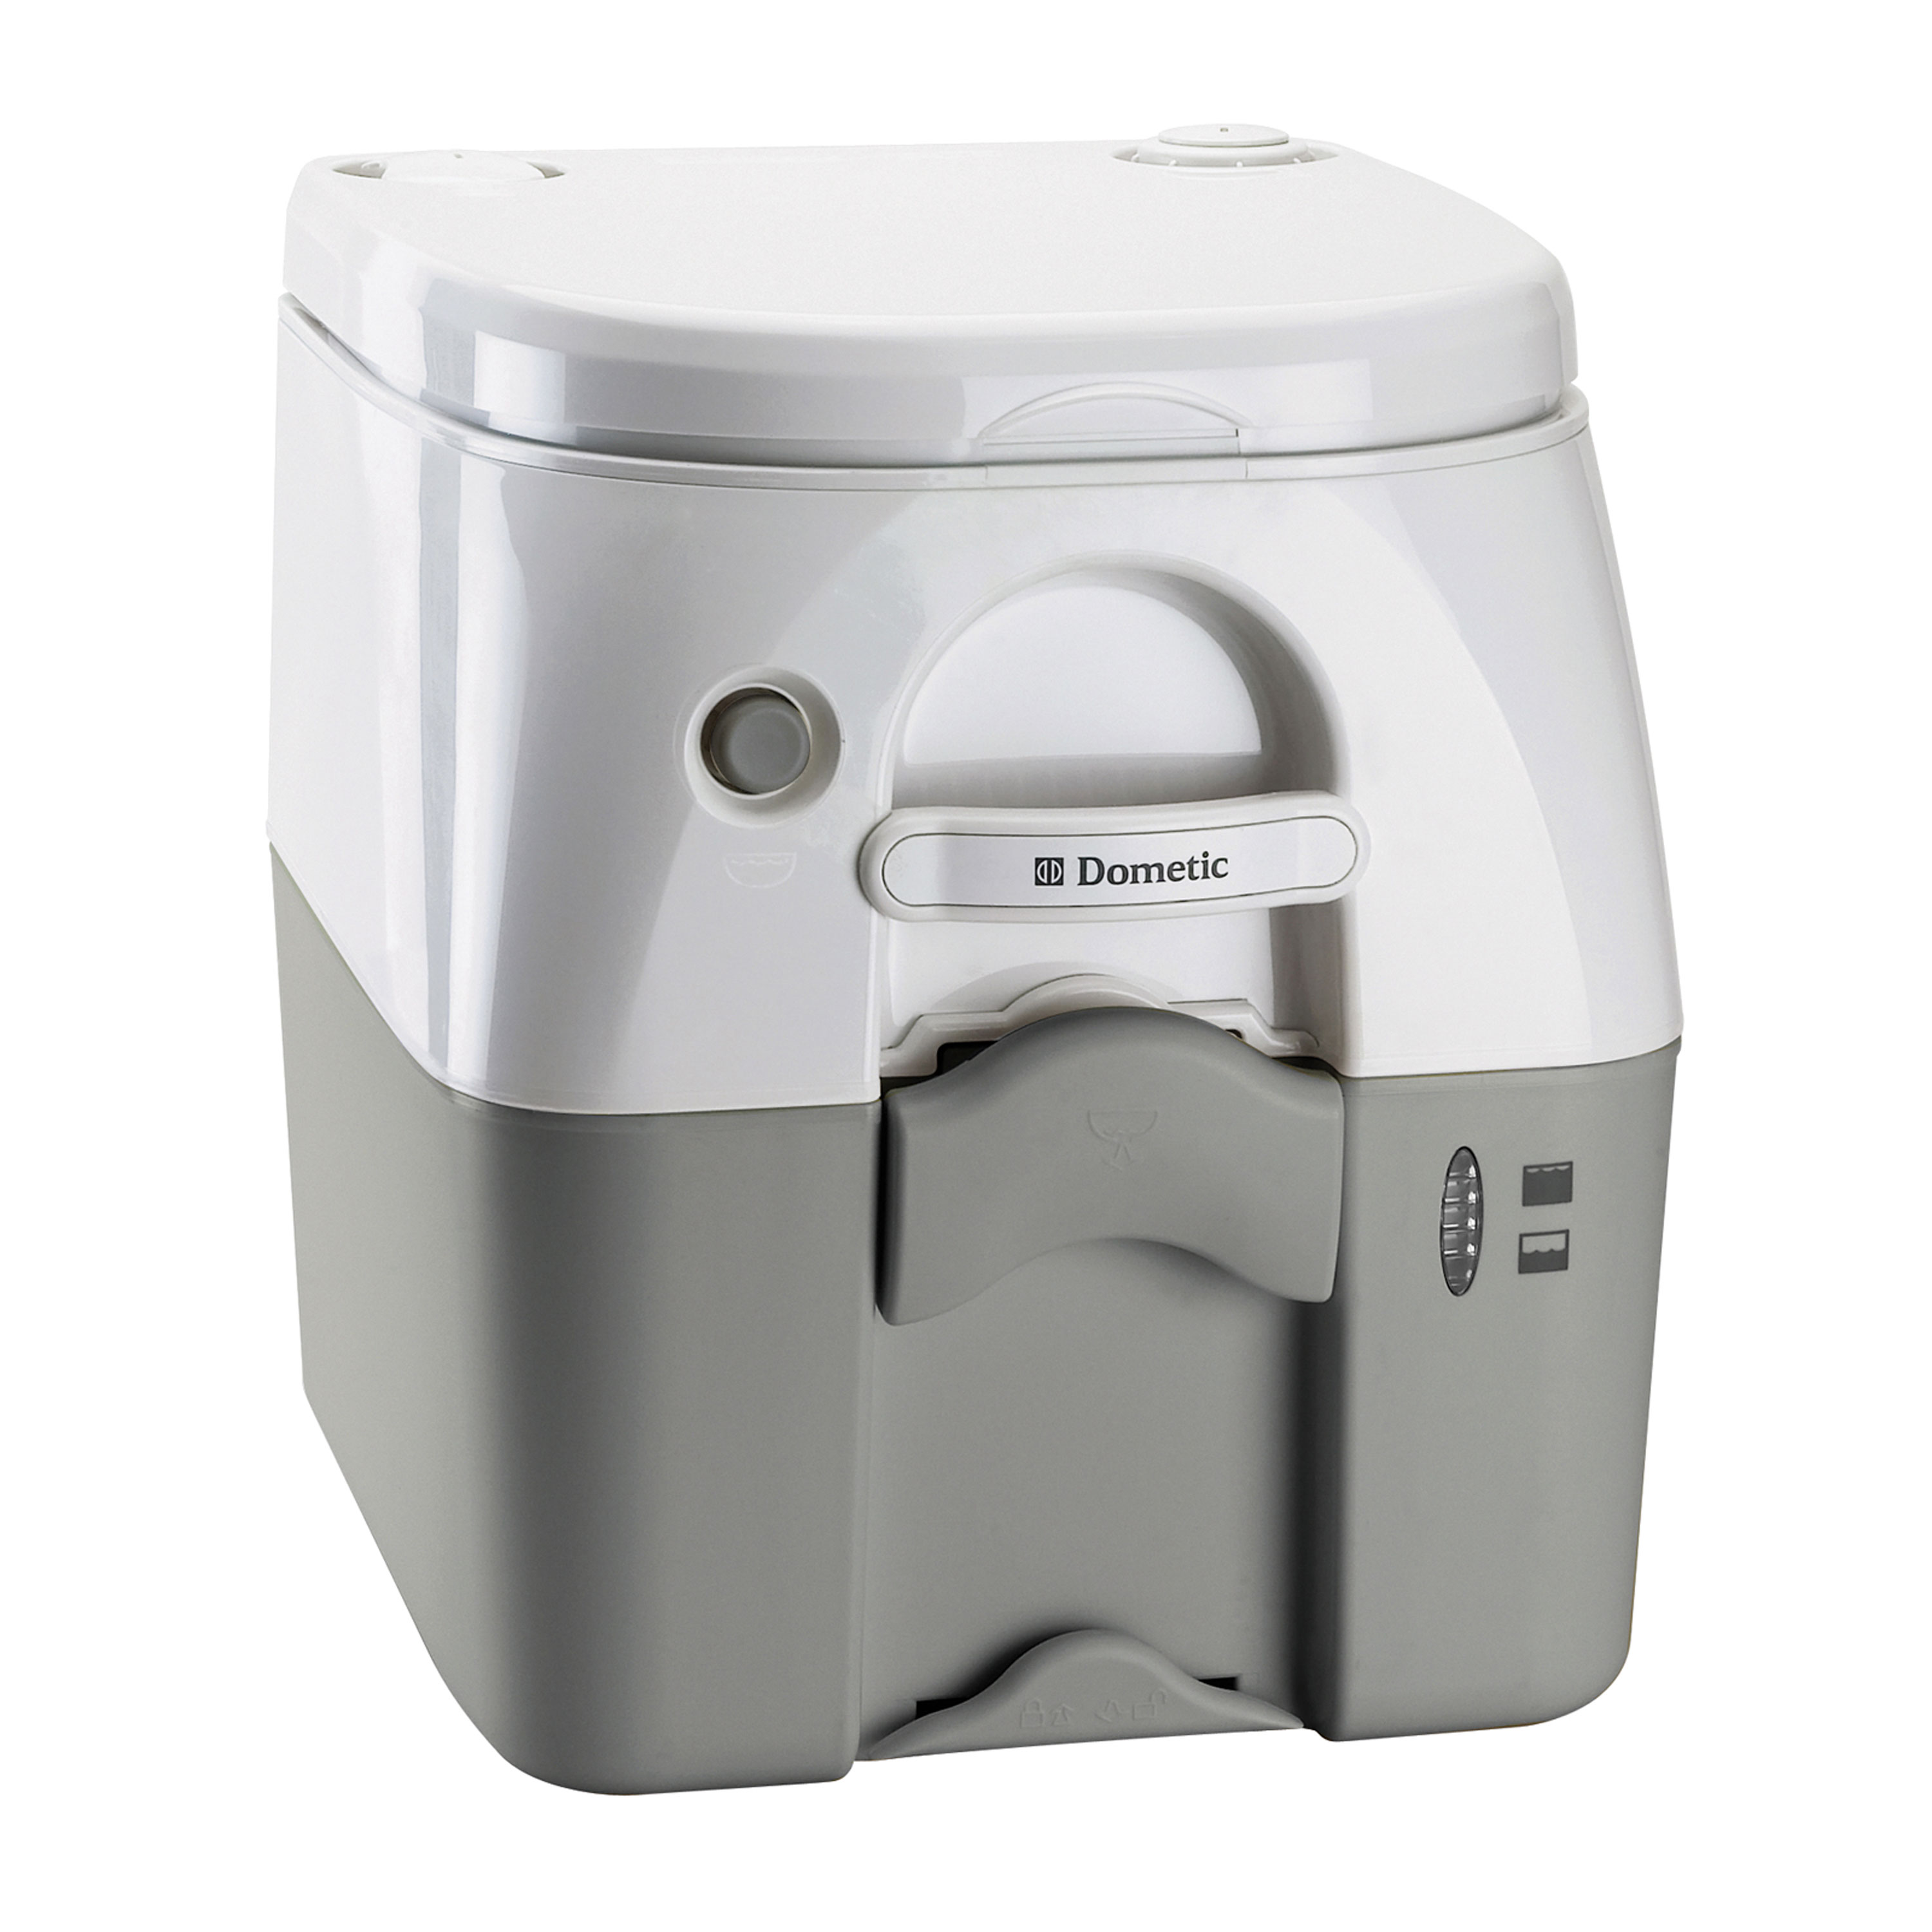 Dometic 301097506 970 Series Portable Toilet - 5.0 Gallon, Gray with Stainless Steel Hold-Down Brackets